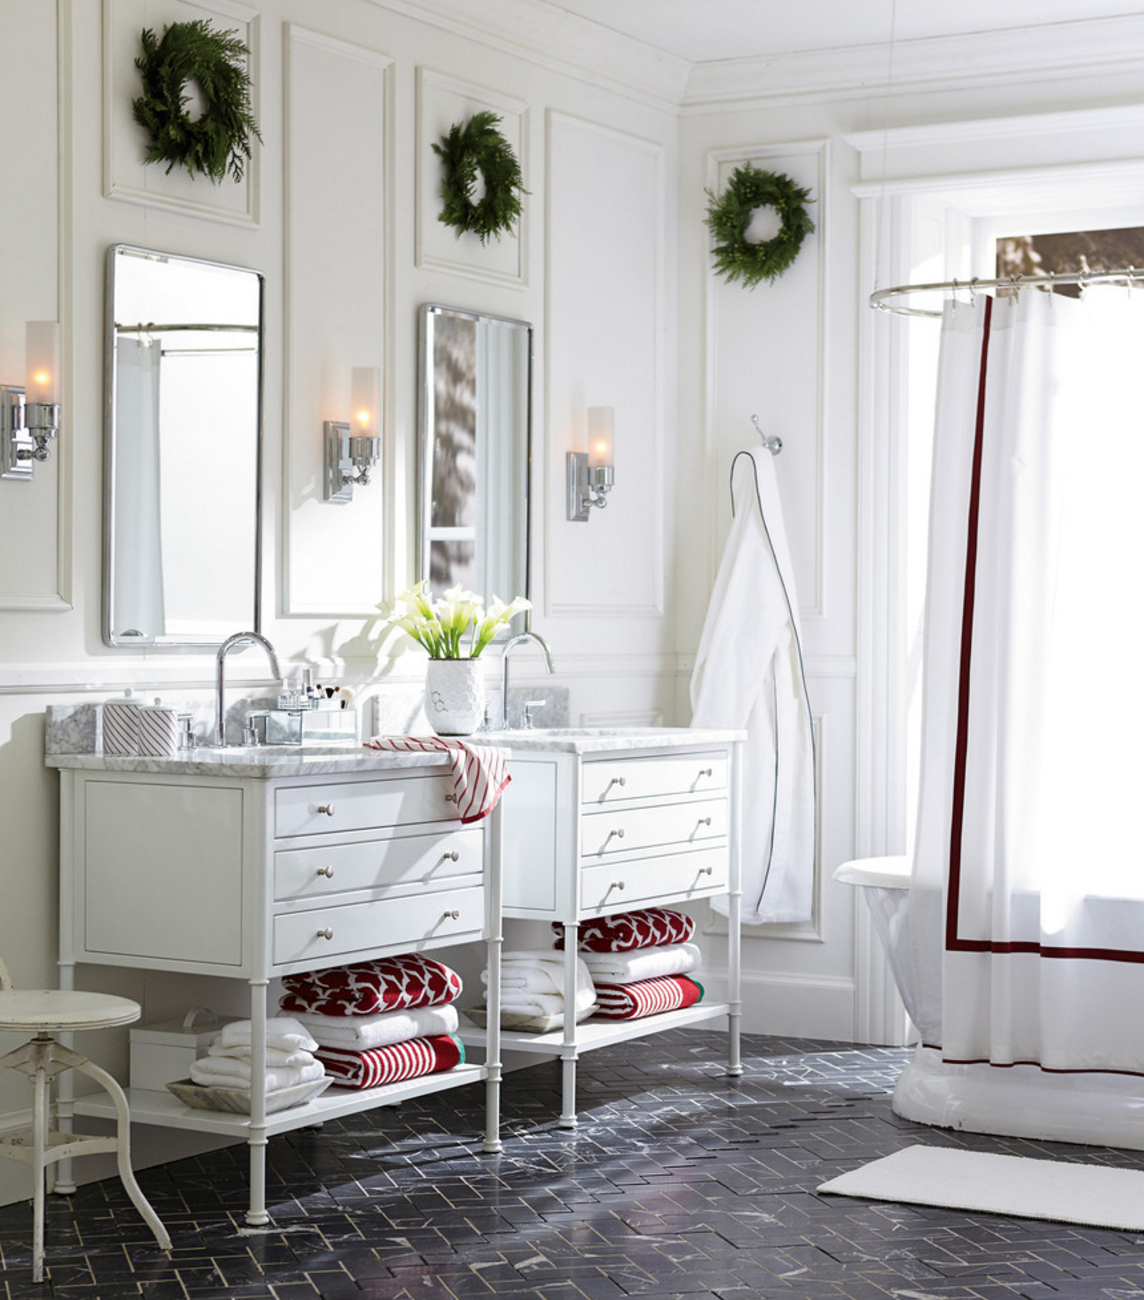 Using Lighter Colors Can Help A Small Bathroom Seem Larger Bathroom Paint Color Inspiration